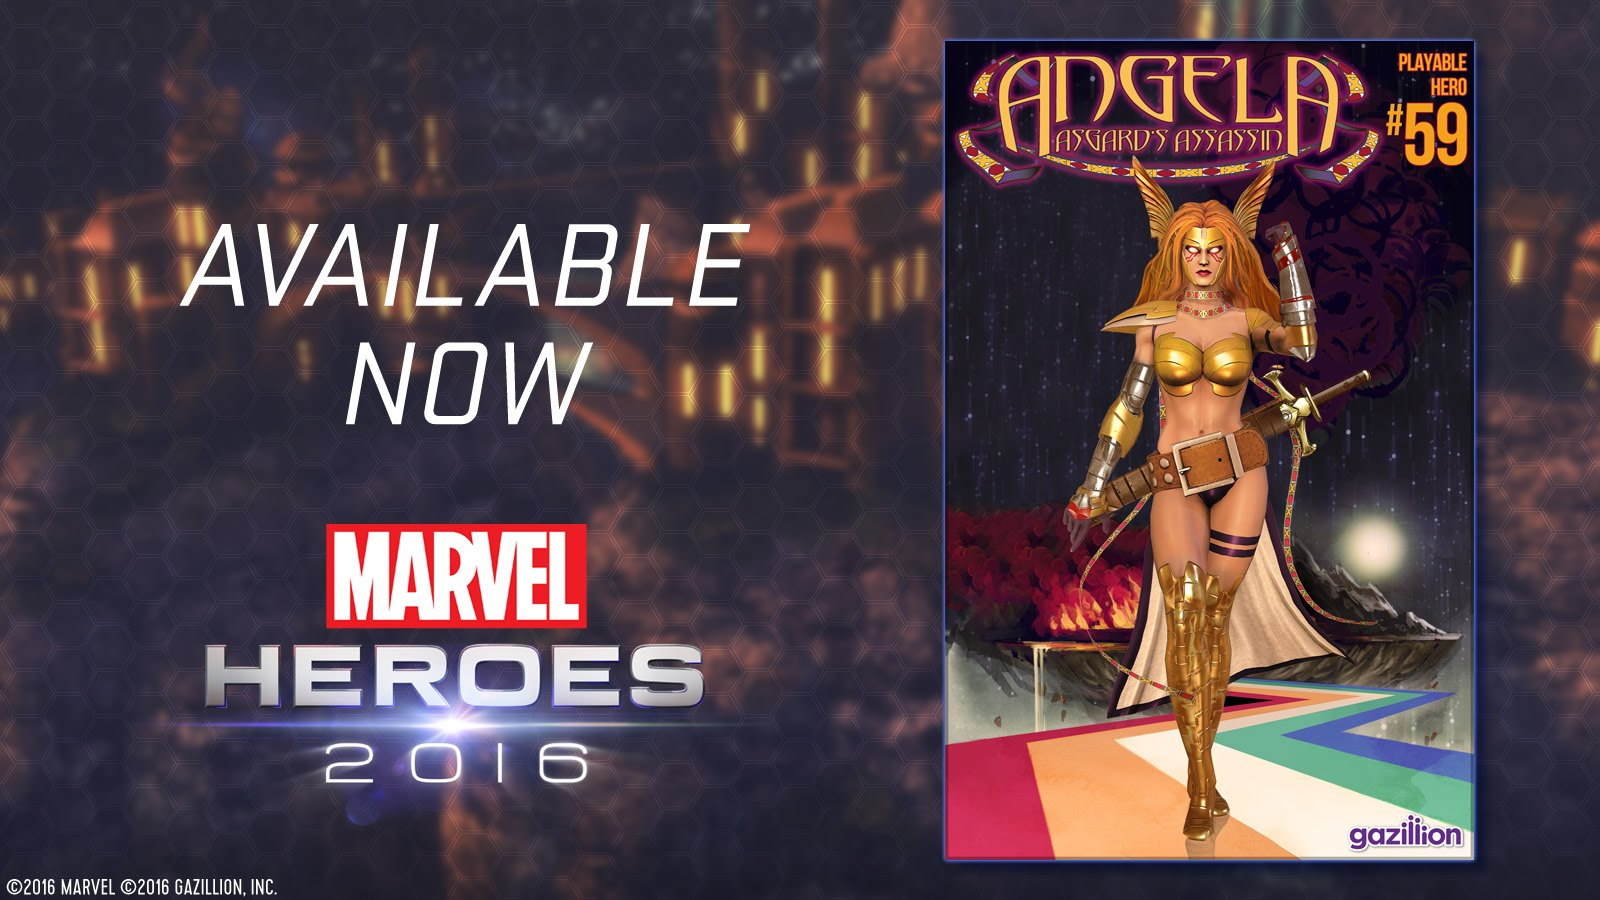 Angela Joins Marvel Heroes 2016!